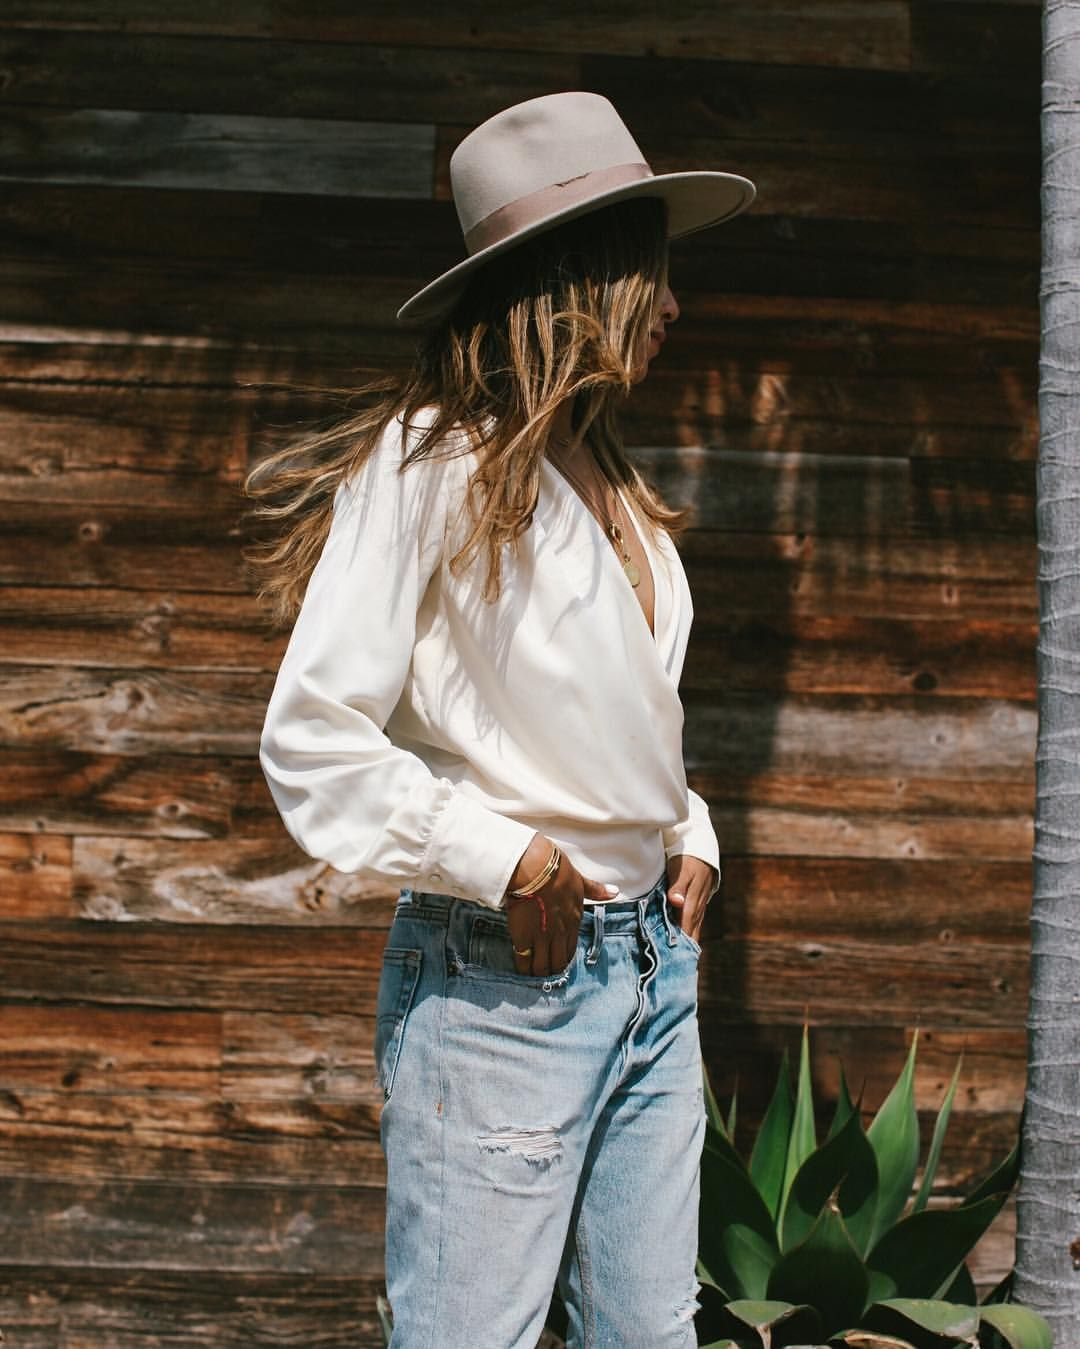 Shop Sincerely Jules On Instagram The Perfect Day To Night Top Shop Our Samantha Top Shopsincerelyjules Com Sincerelyjuleswear